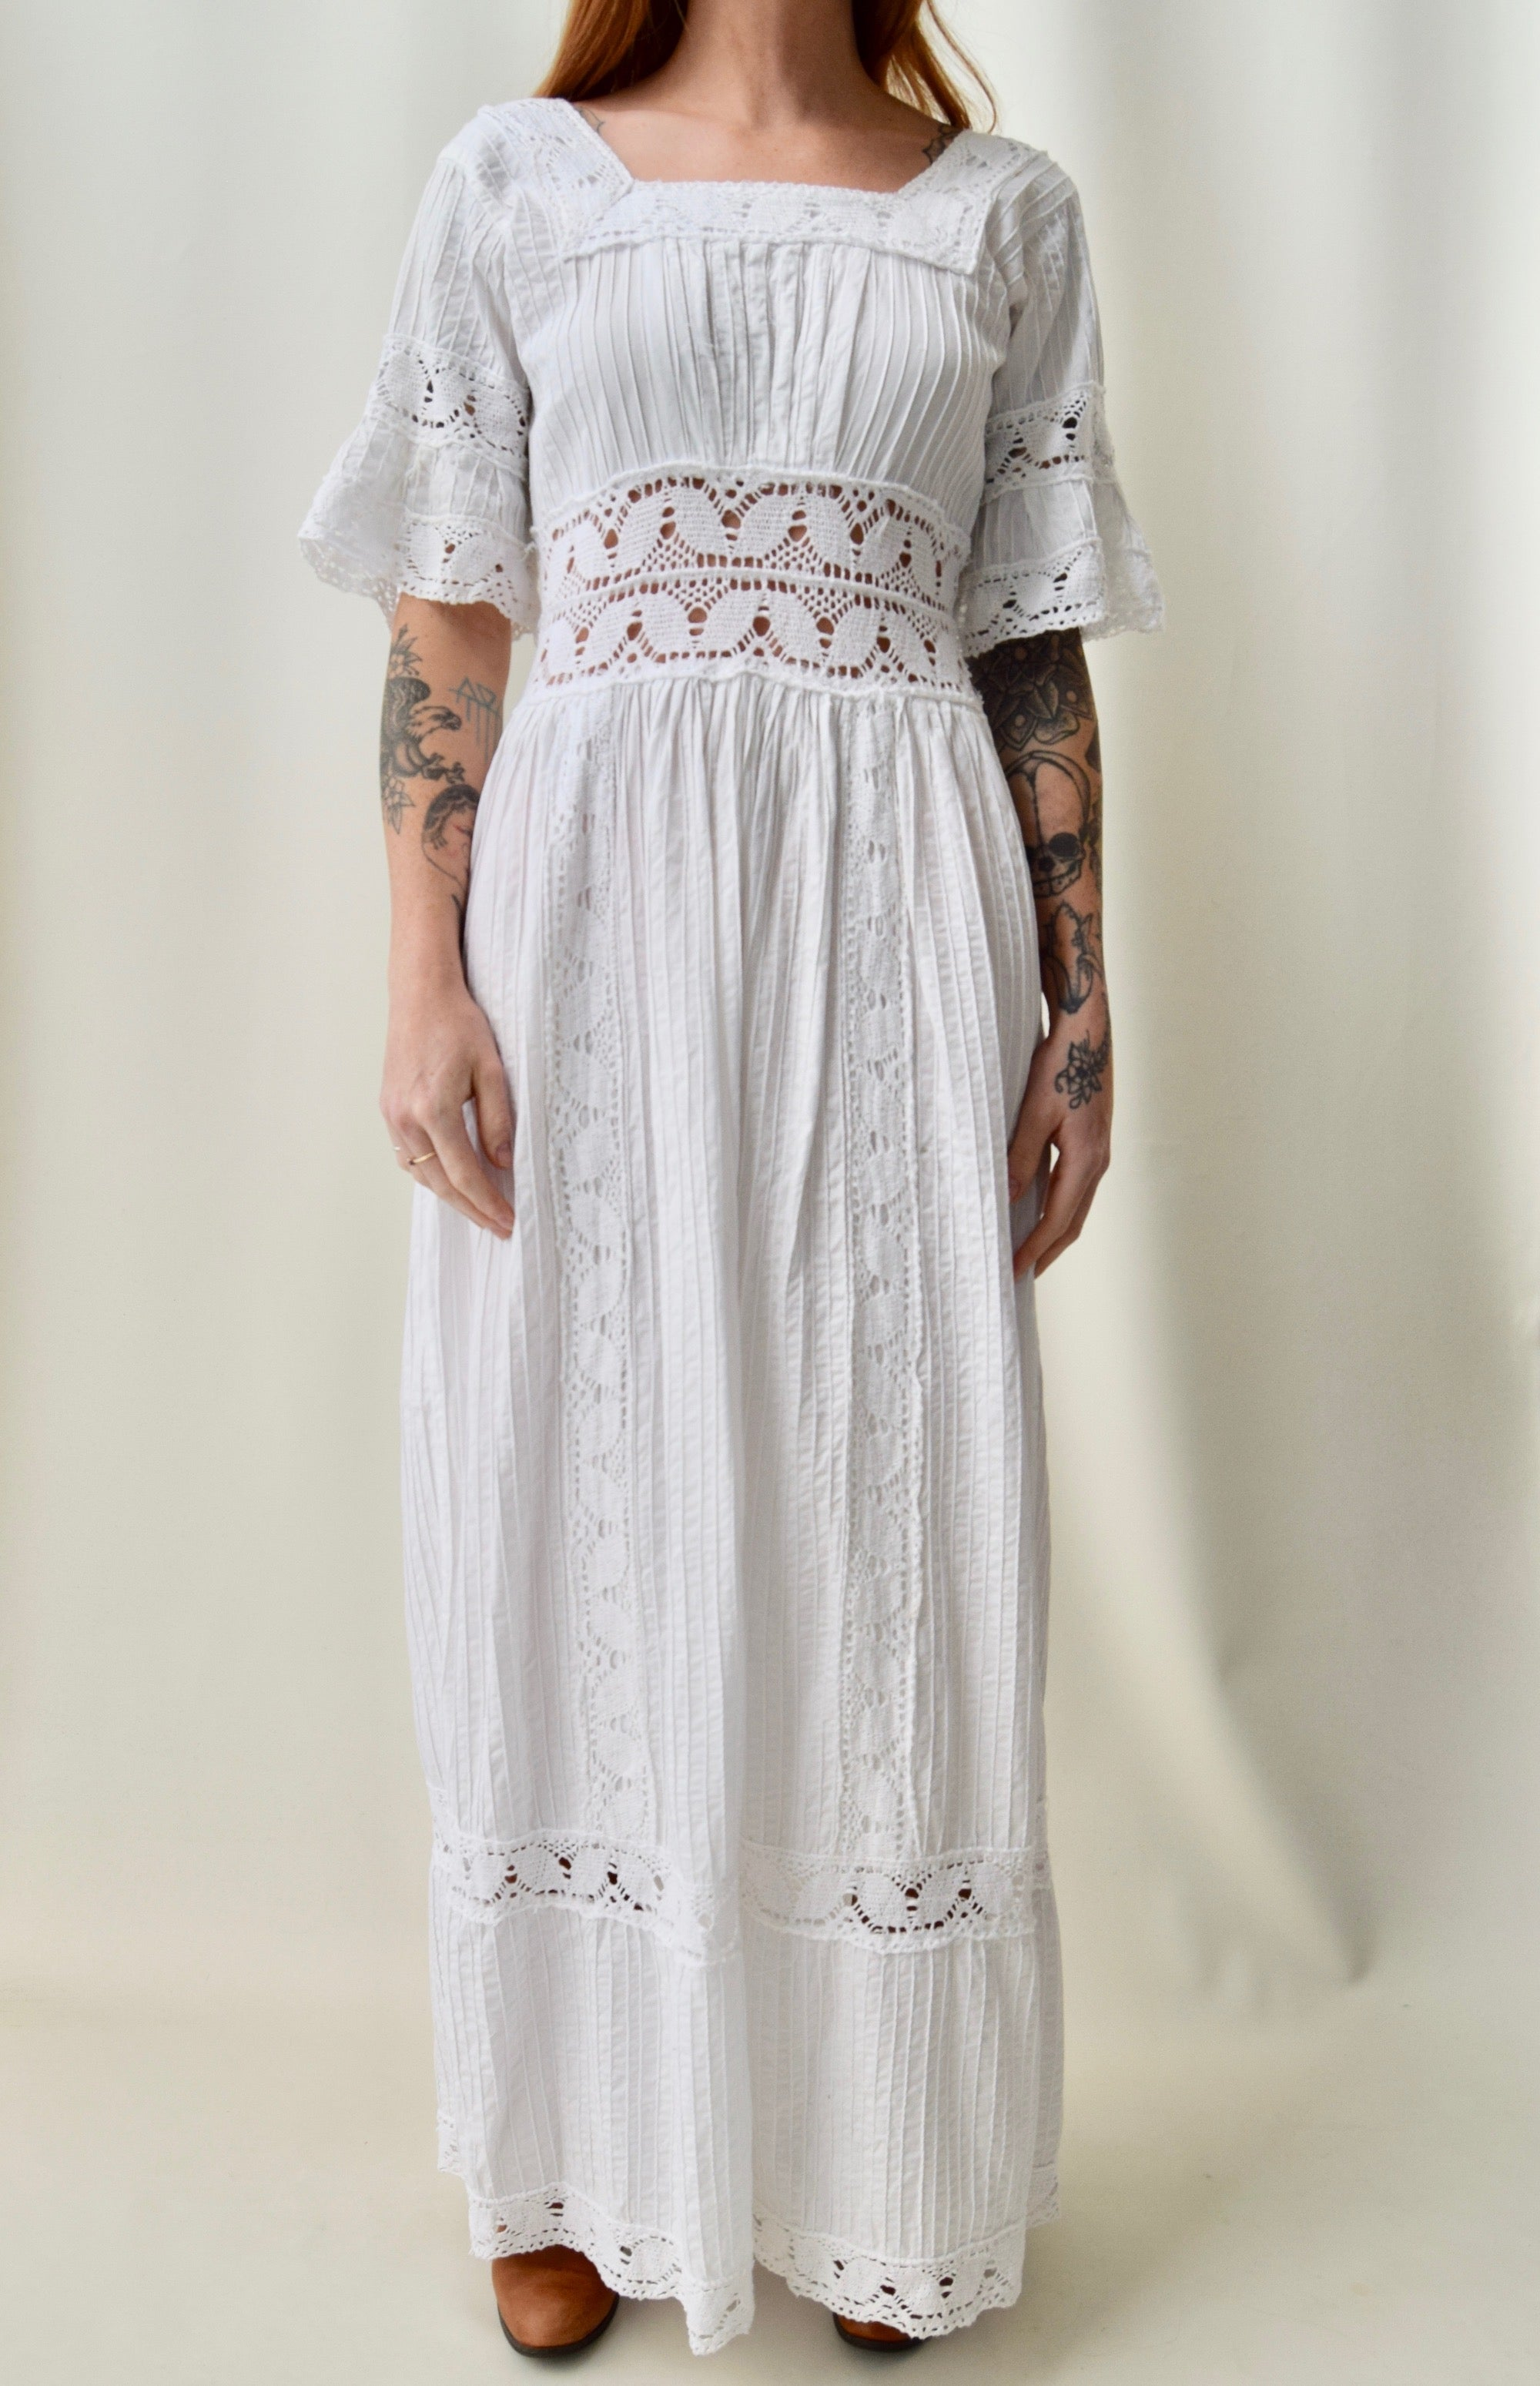 Vintage Mexican Crocheted Lace Wedding Dress